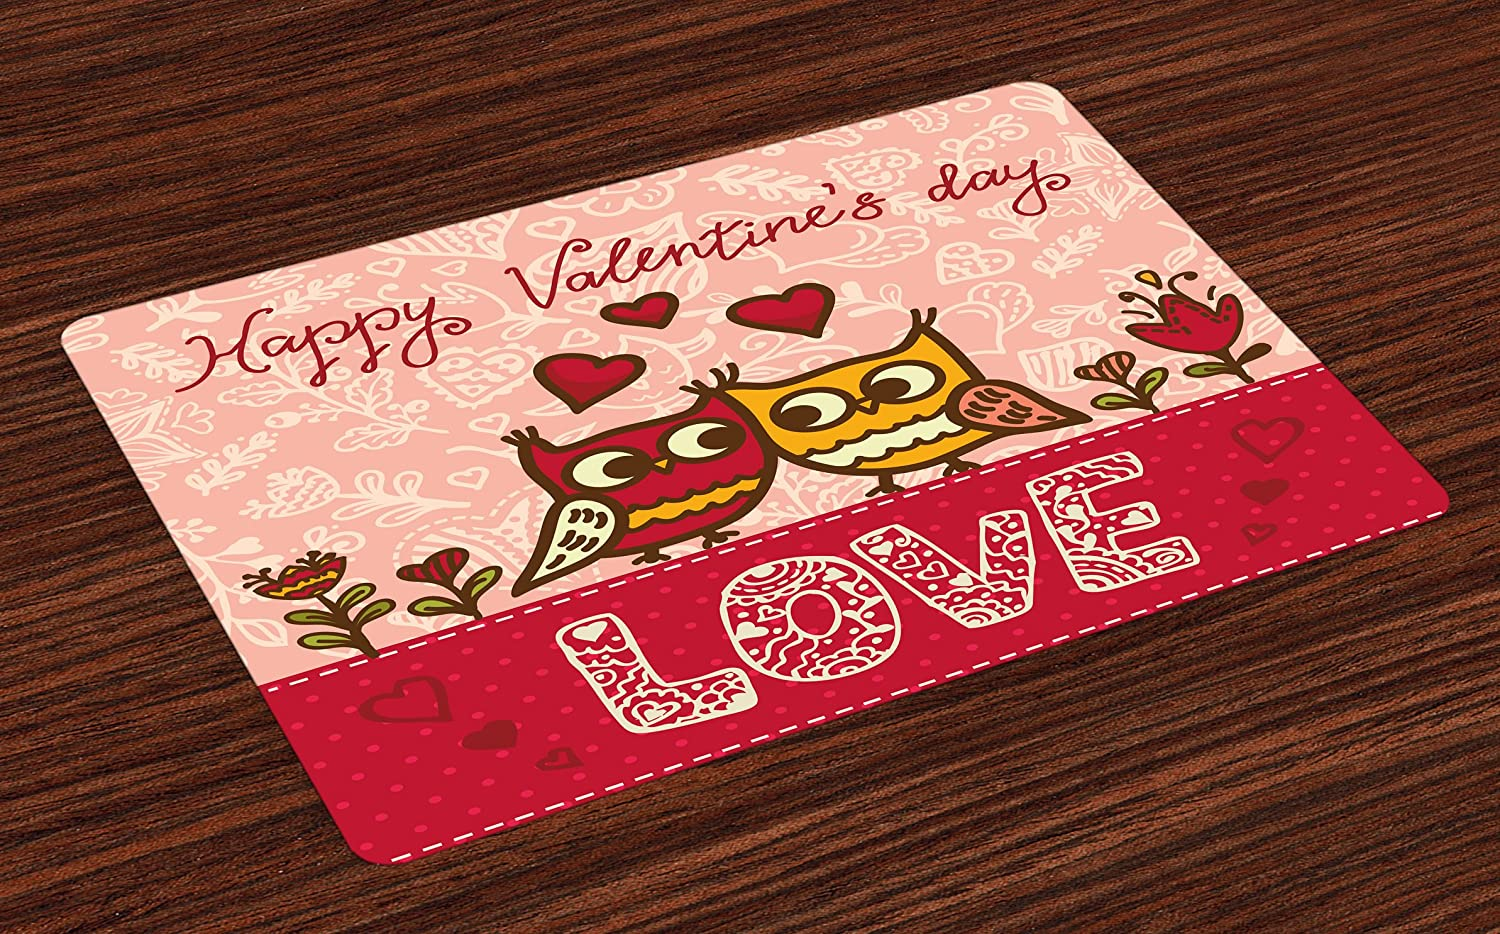 Ambesonne Valentines Day Place Mats Set of 4, Owls in Love Print Cute Partners Couples Boho Style Hearts Flowers Dots, Washable Fabric Placemats for Dining Room Kitchen Table Decor, Pink Red Yellow